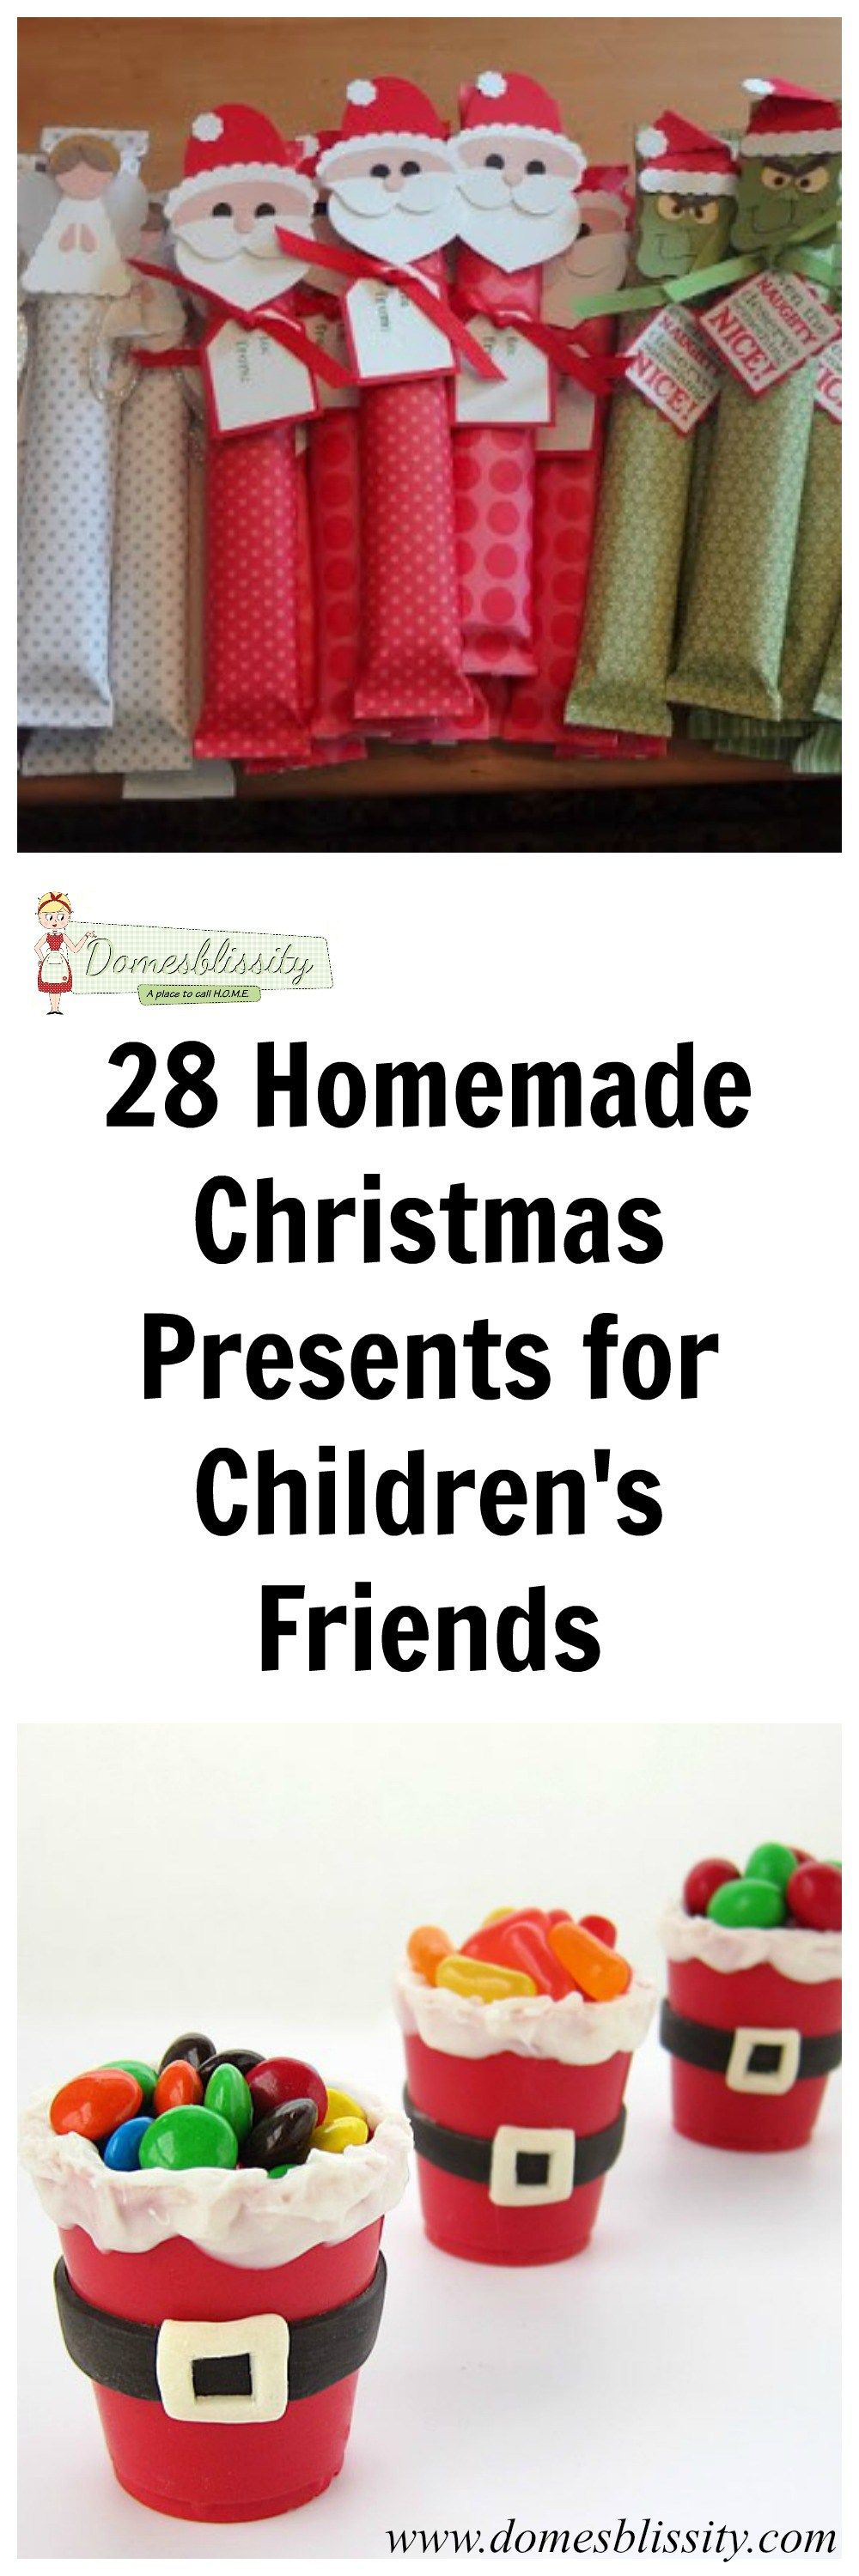 Last week i shared with you 21 homemade christmas presents to make awesome 28 homemade christmas presents for childrens friends domesblissity negle Images